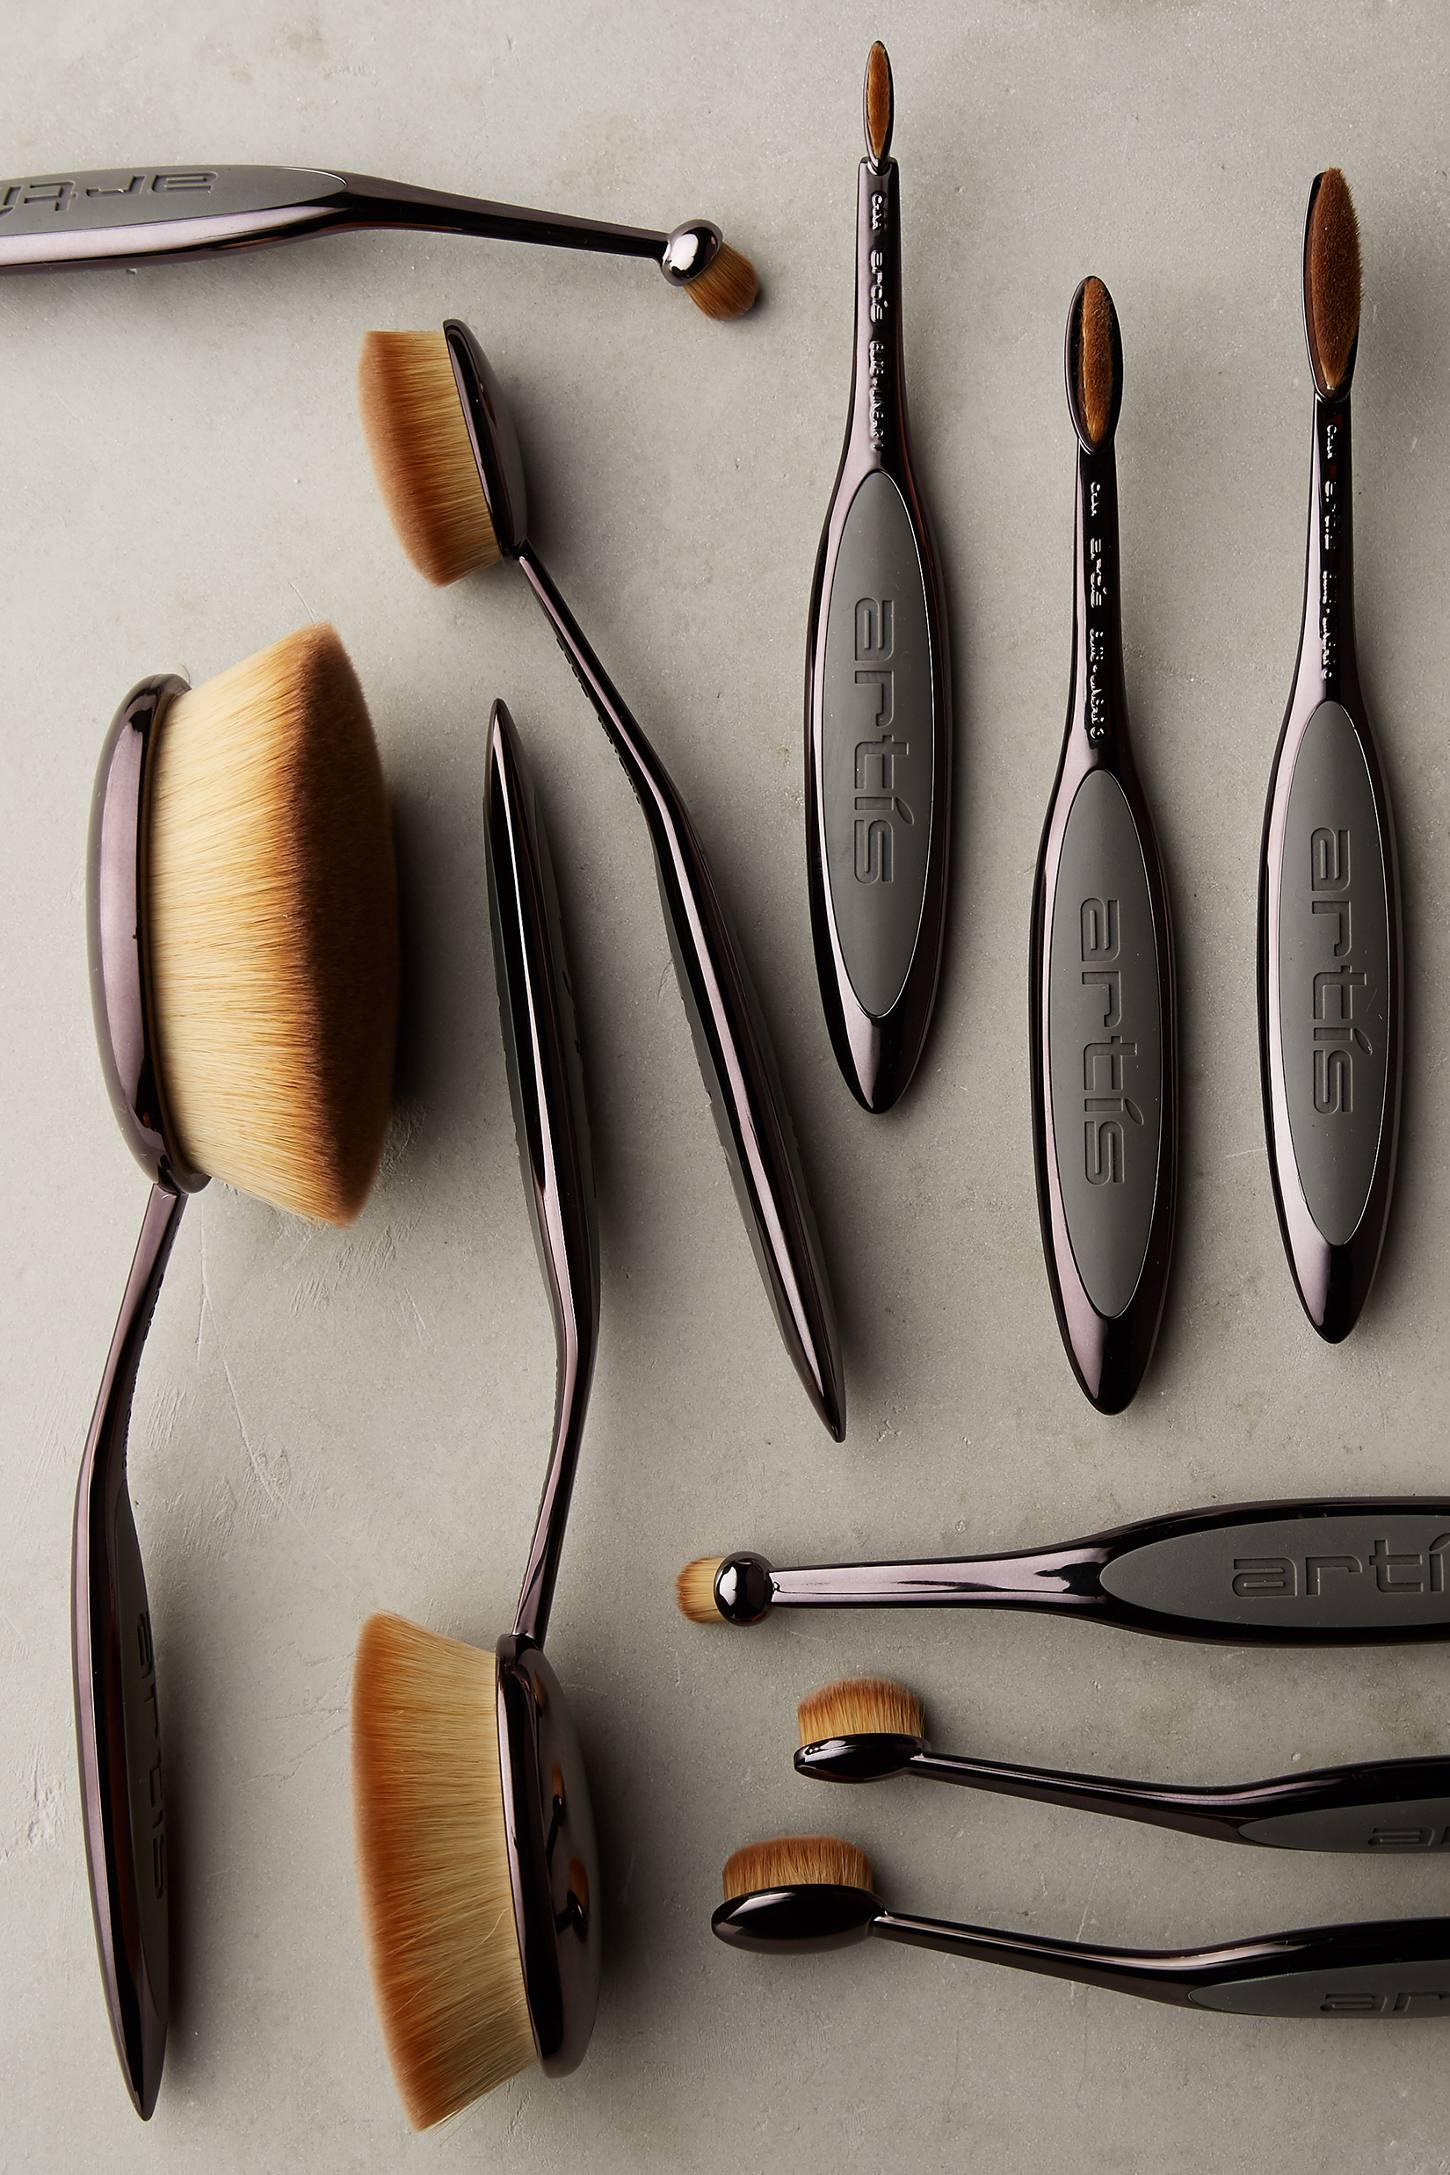 Slide View: 1: Artis Ten Brush Set